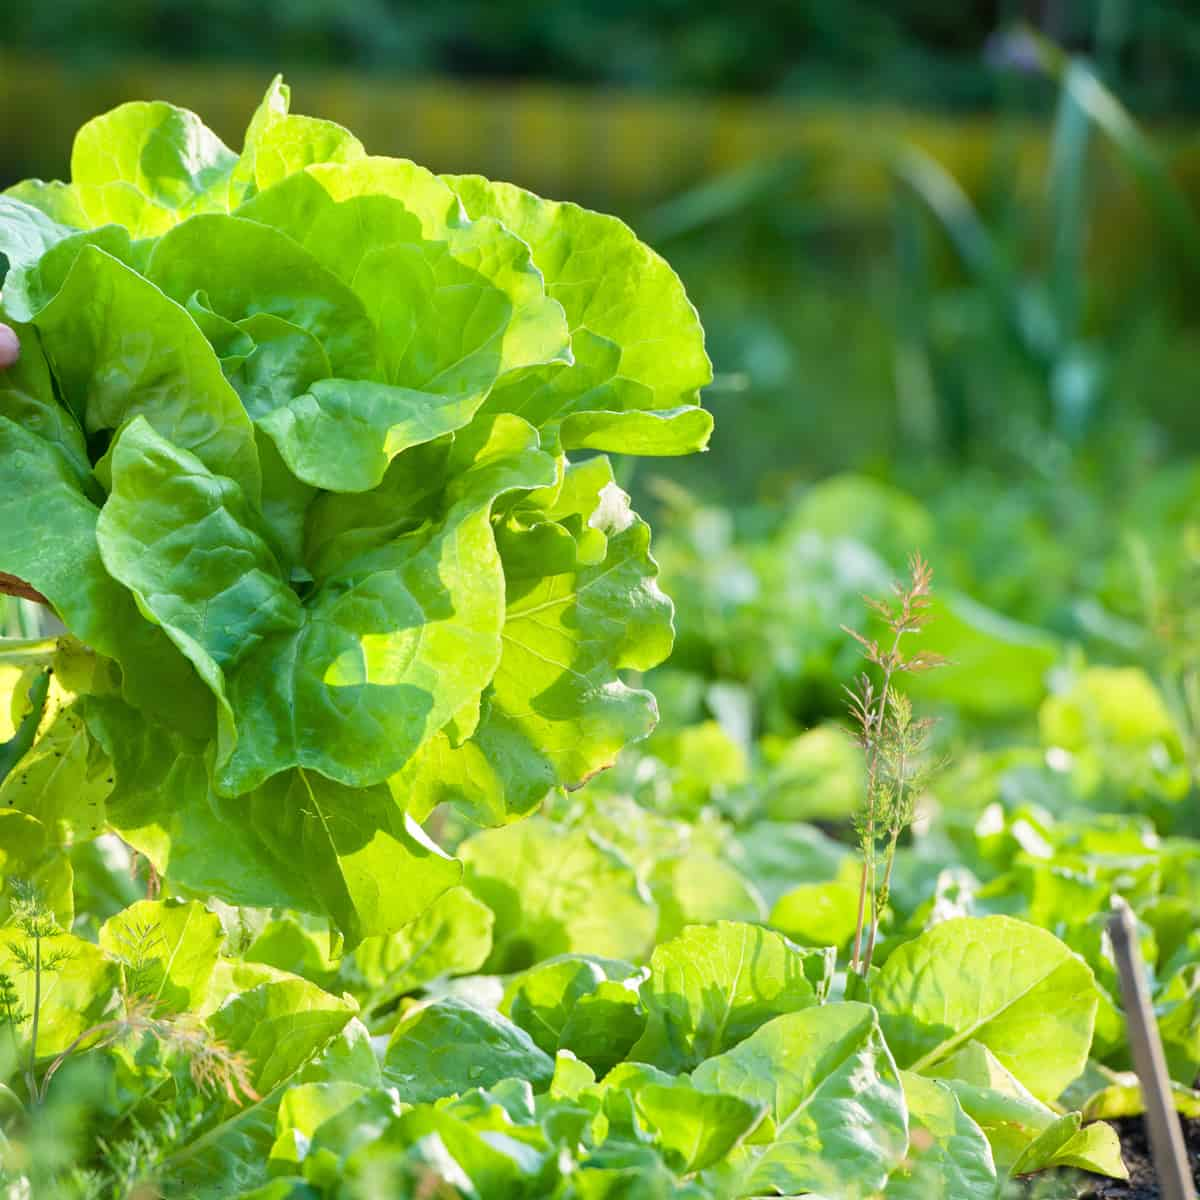 leaf lettuce is one of the easiest vegetables to grow